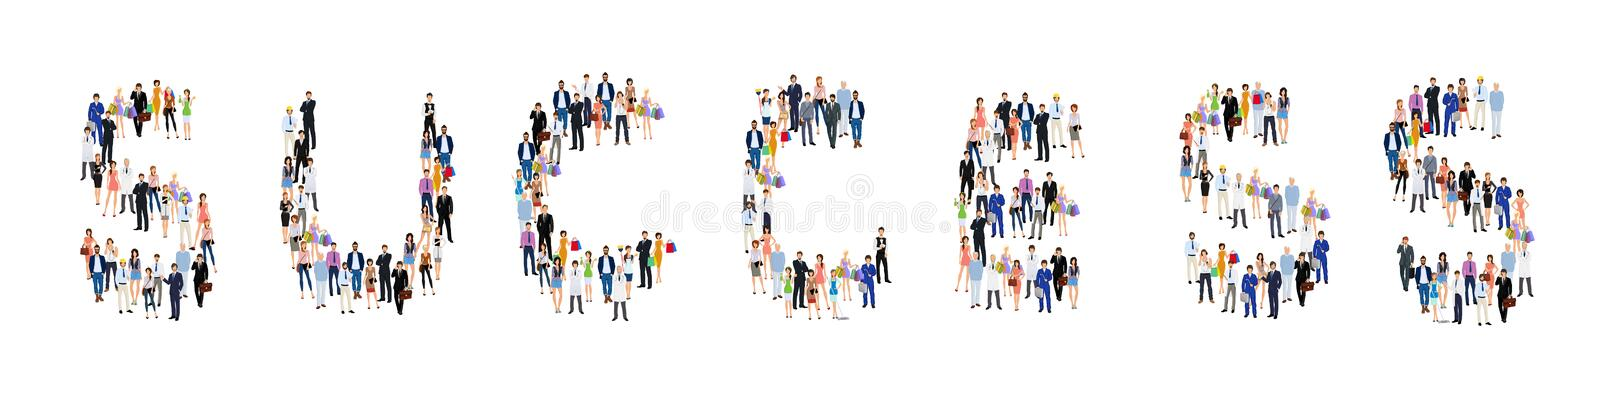 Group of people success poster. Group of people adult professionals in success lettering shape poster vector illustration stock illustration